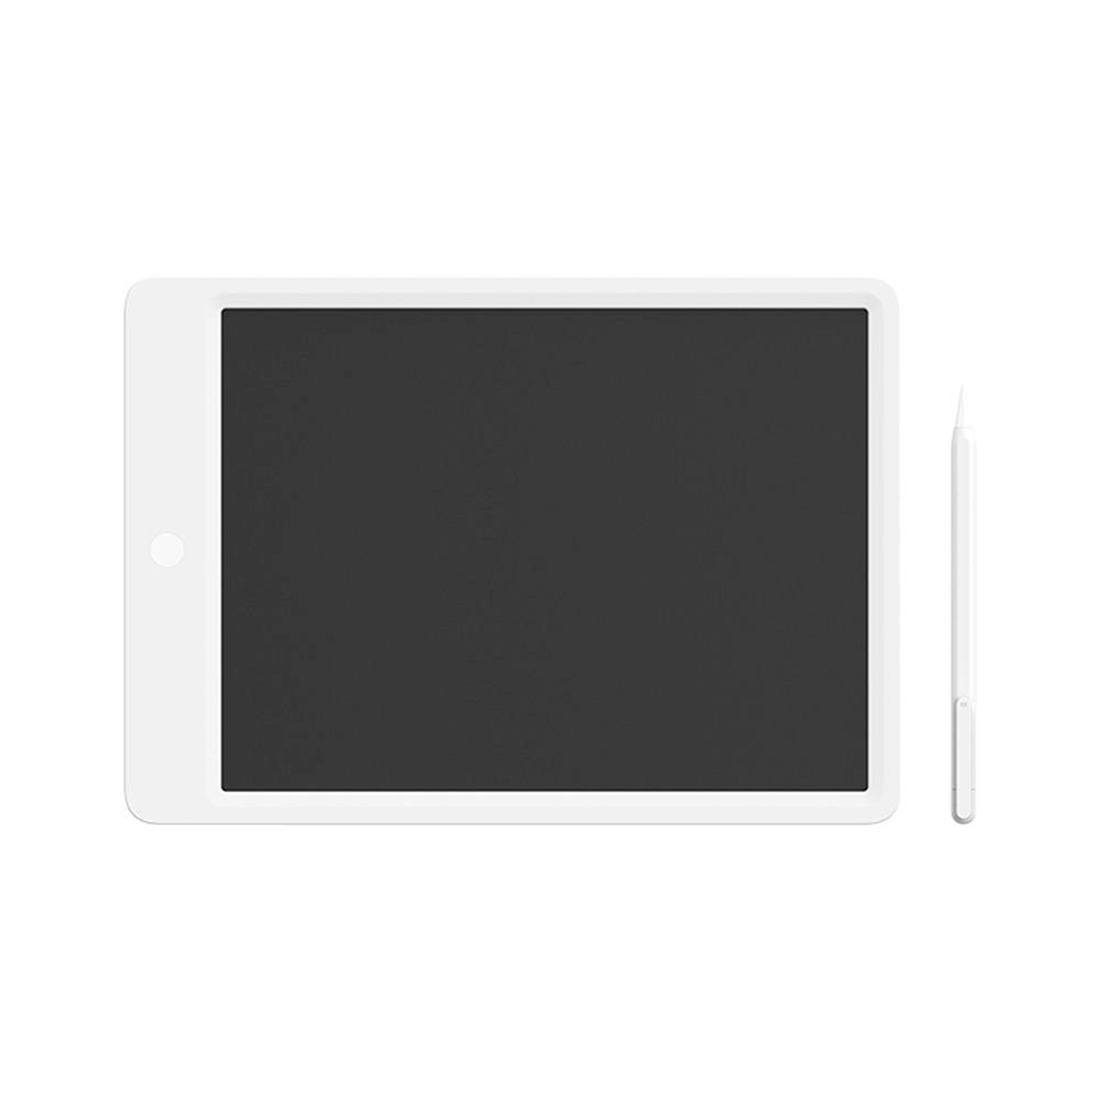 Цифровая доска Xiaomi Mijia LCD Blackboard 10 inches